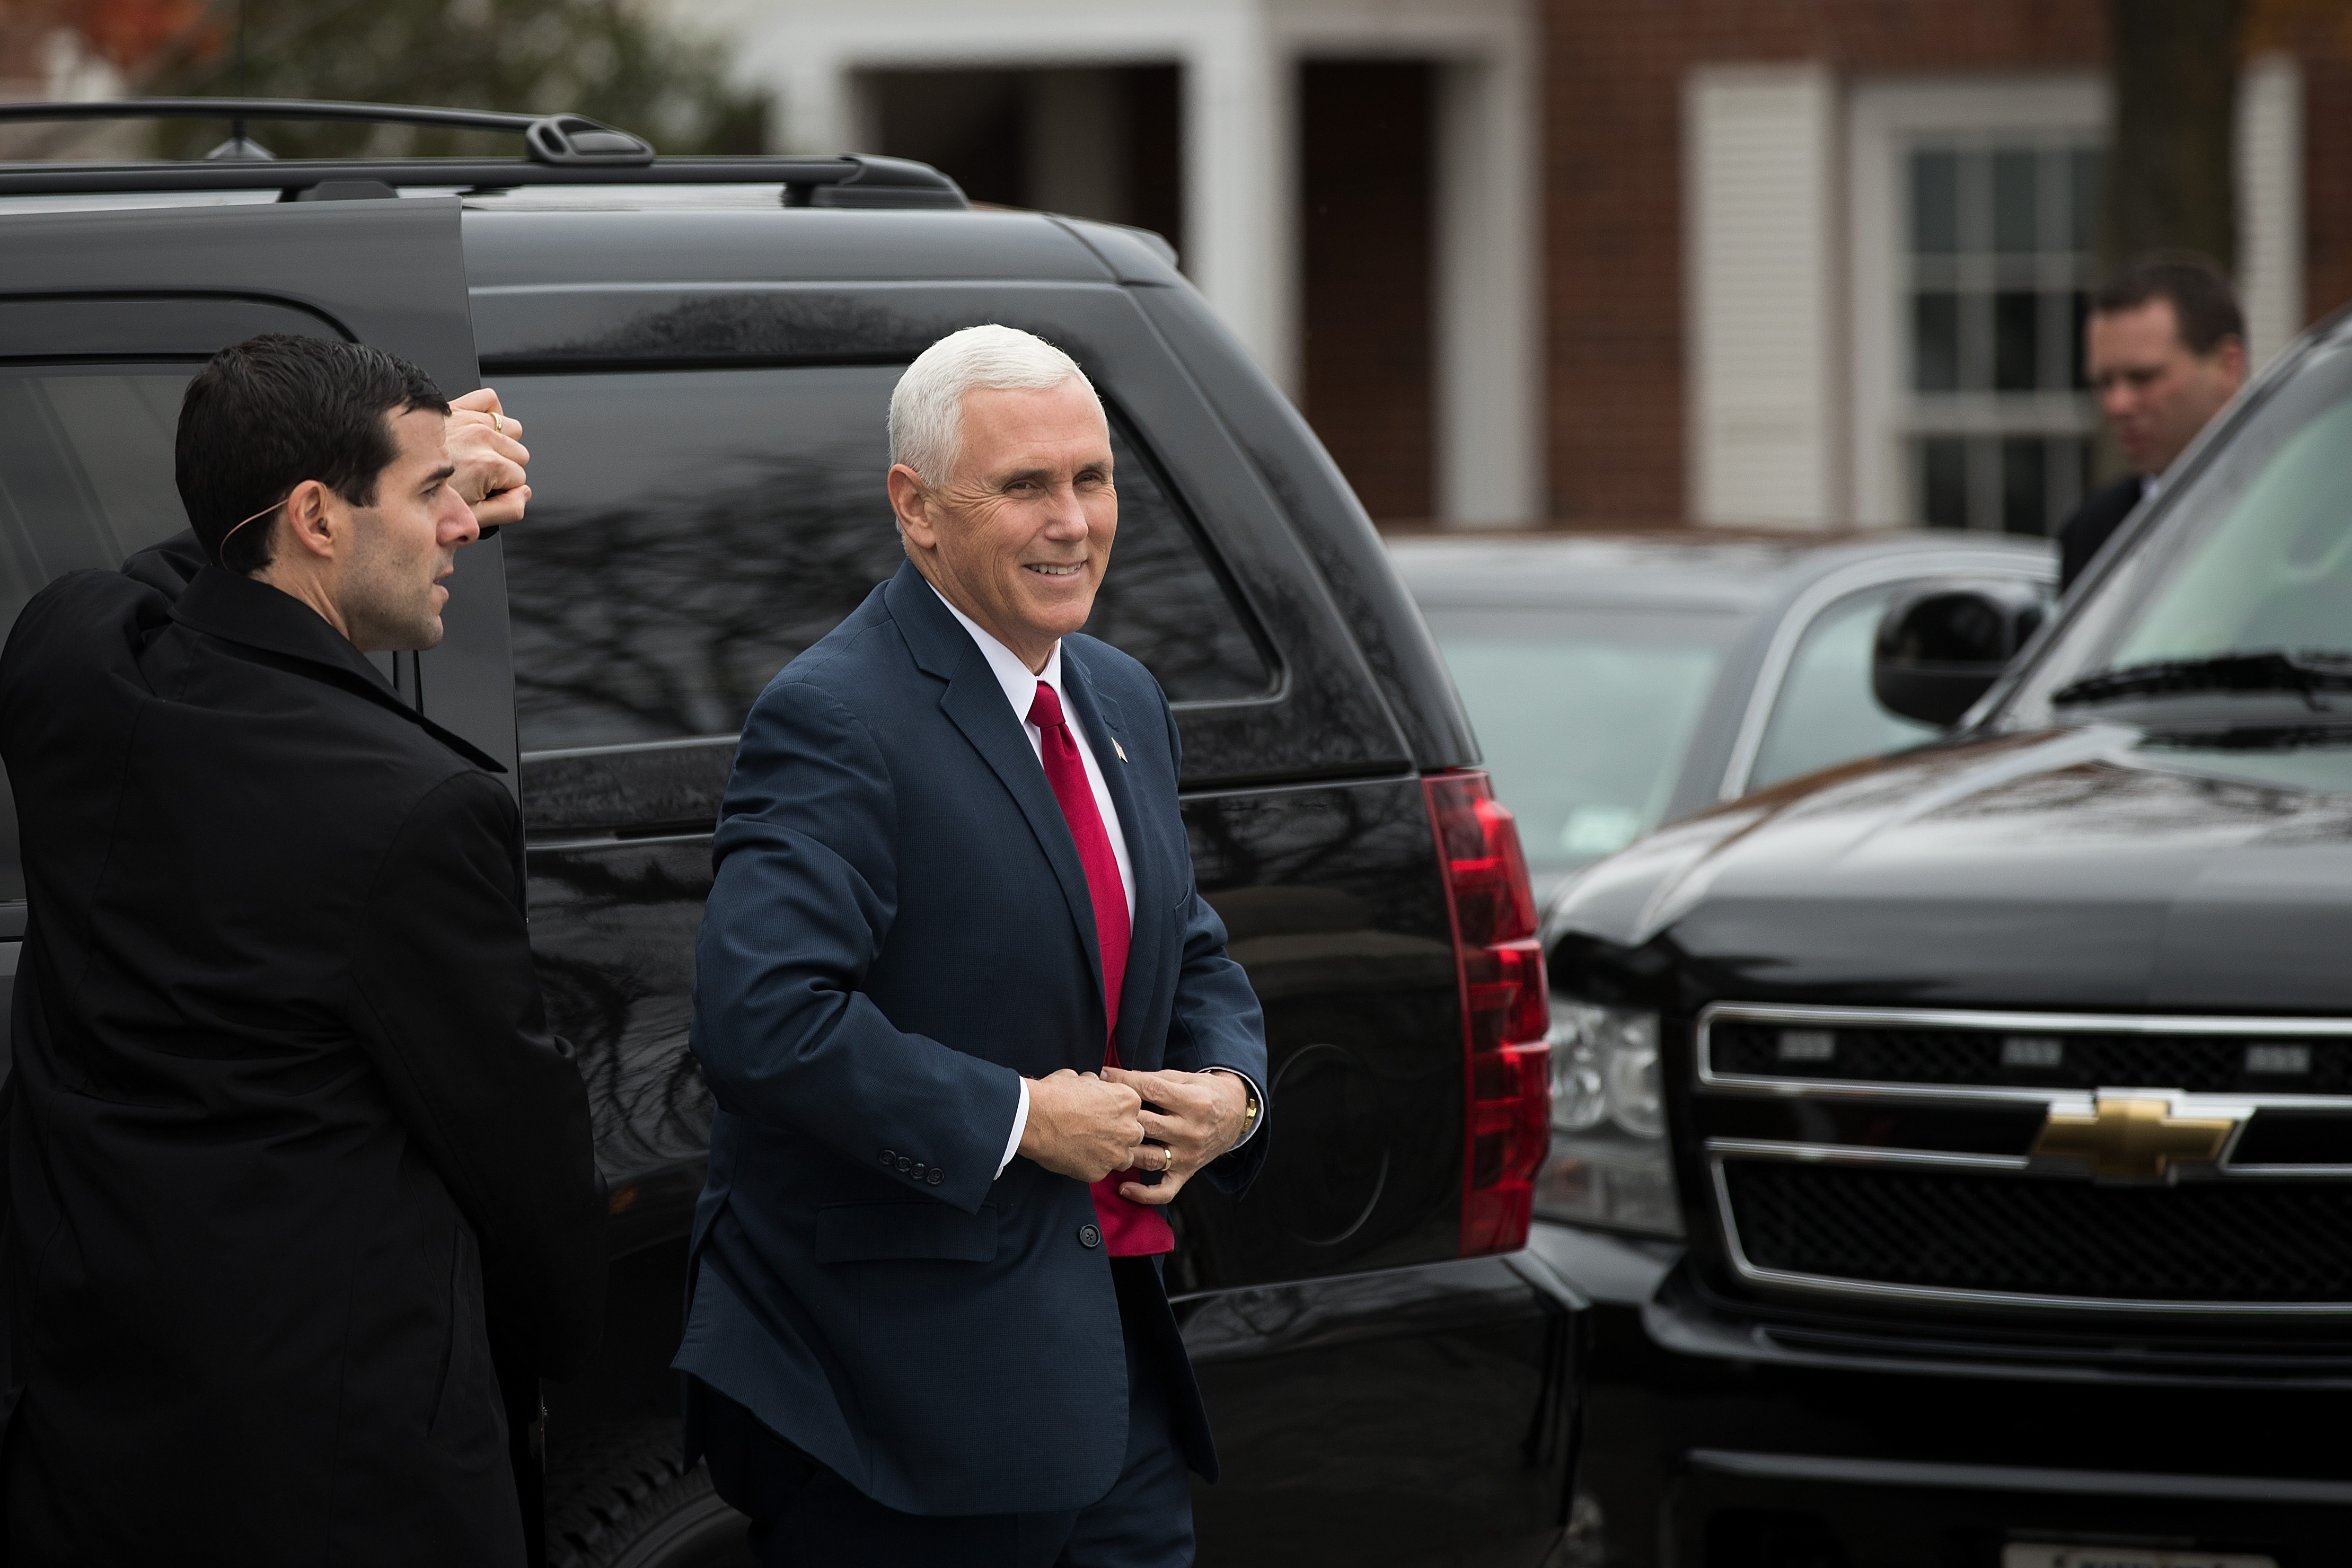 Vice President-elect Mike Pence arrives at the clubhouse at Trump International Golf Club in Bedminster Township, N.J.